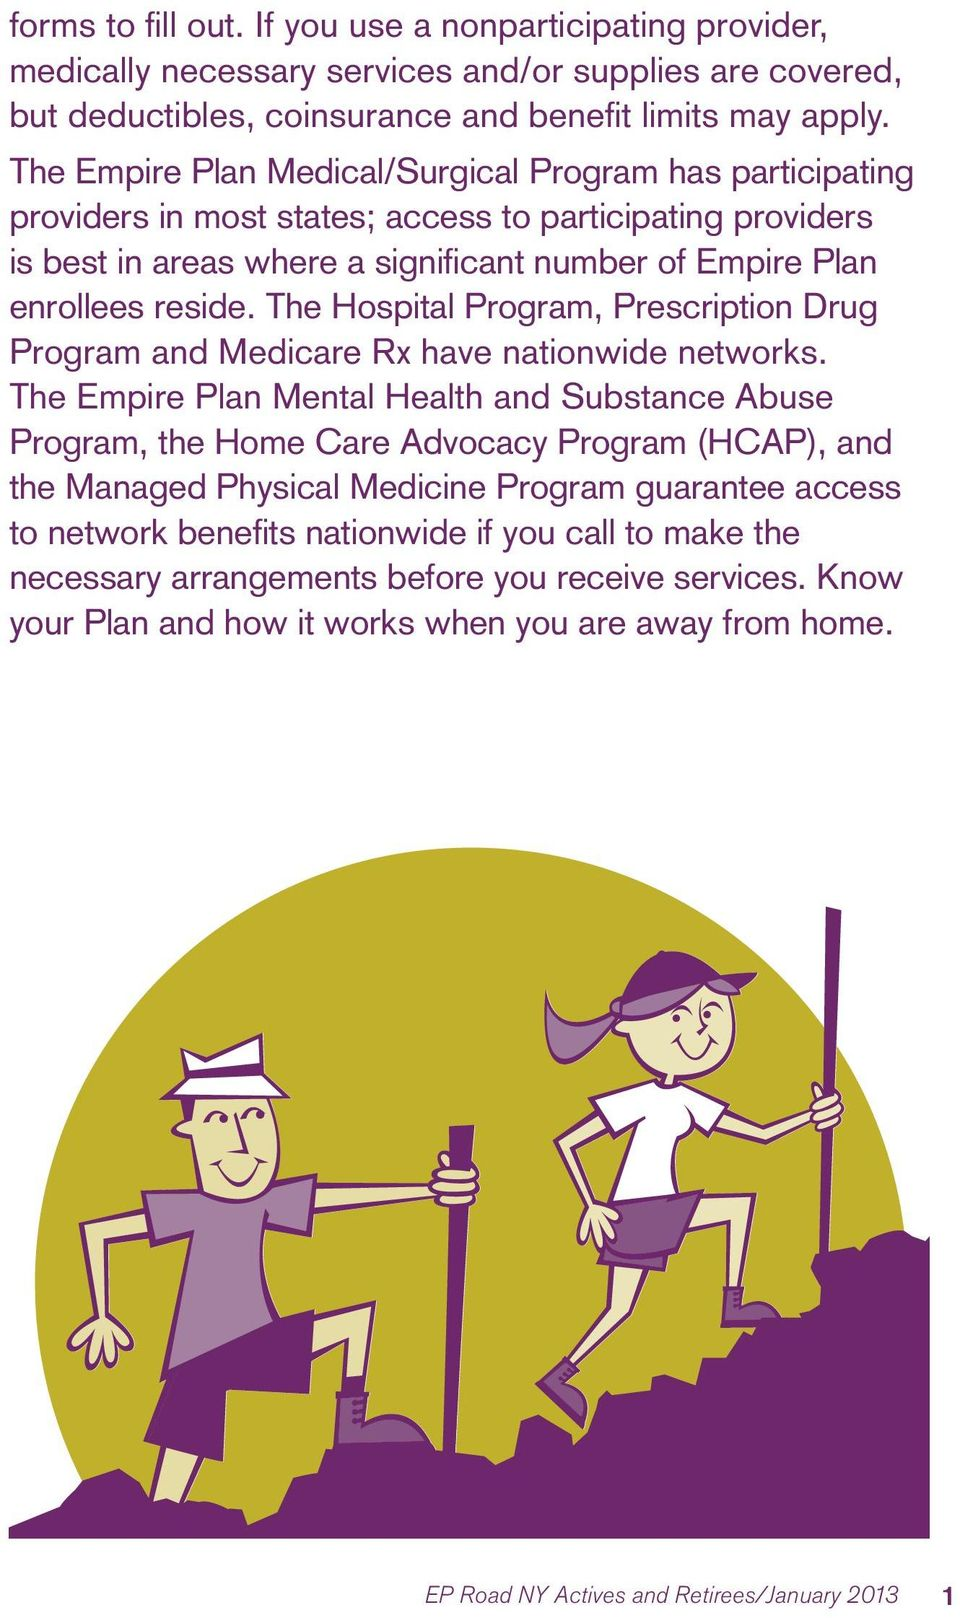 The Hospital Program, Prescription Drug Program and Medicare Rx have nationwide networks.